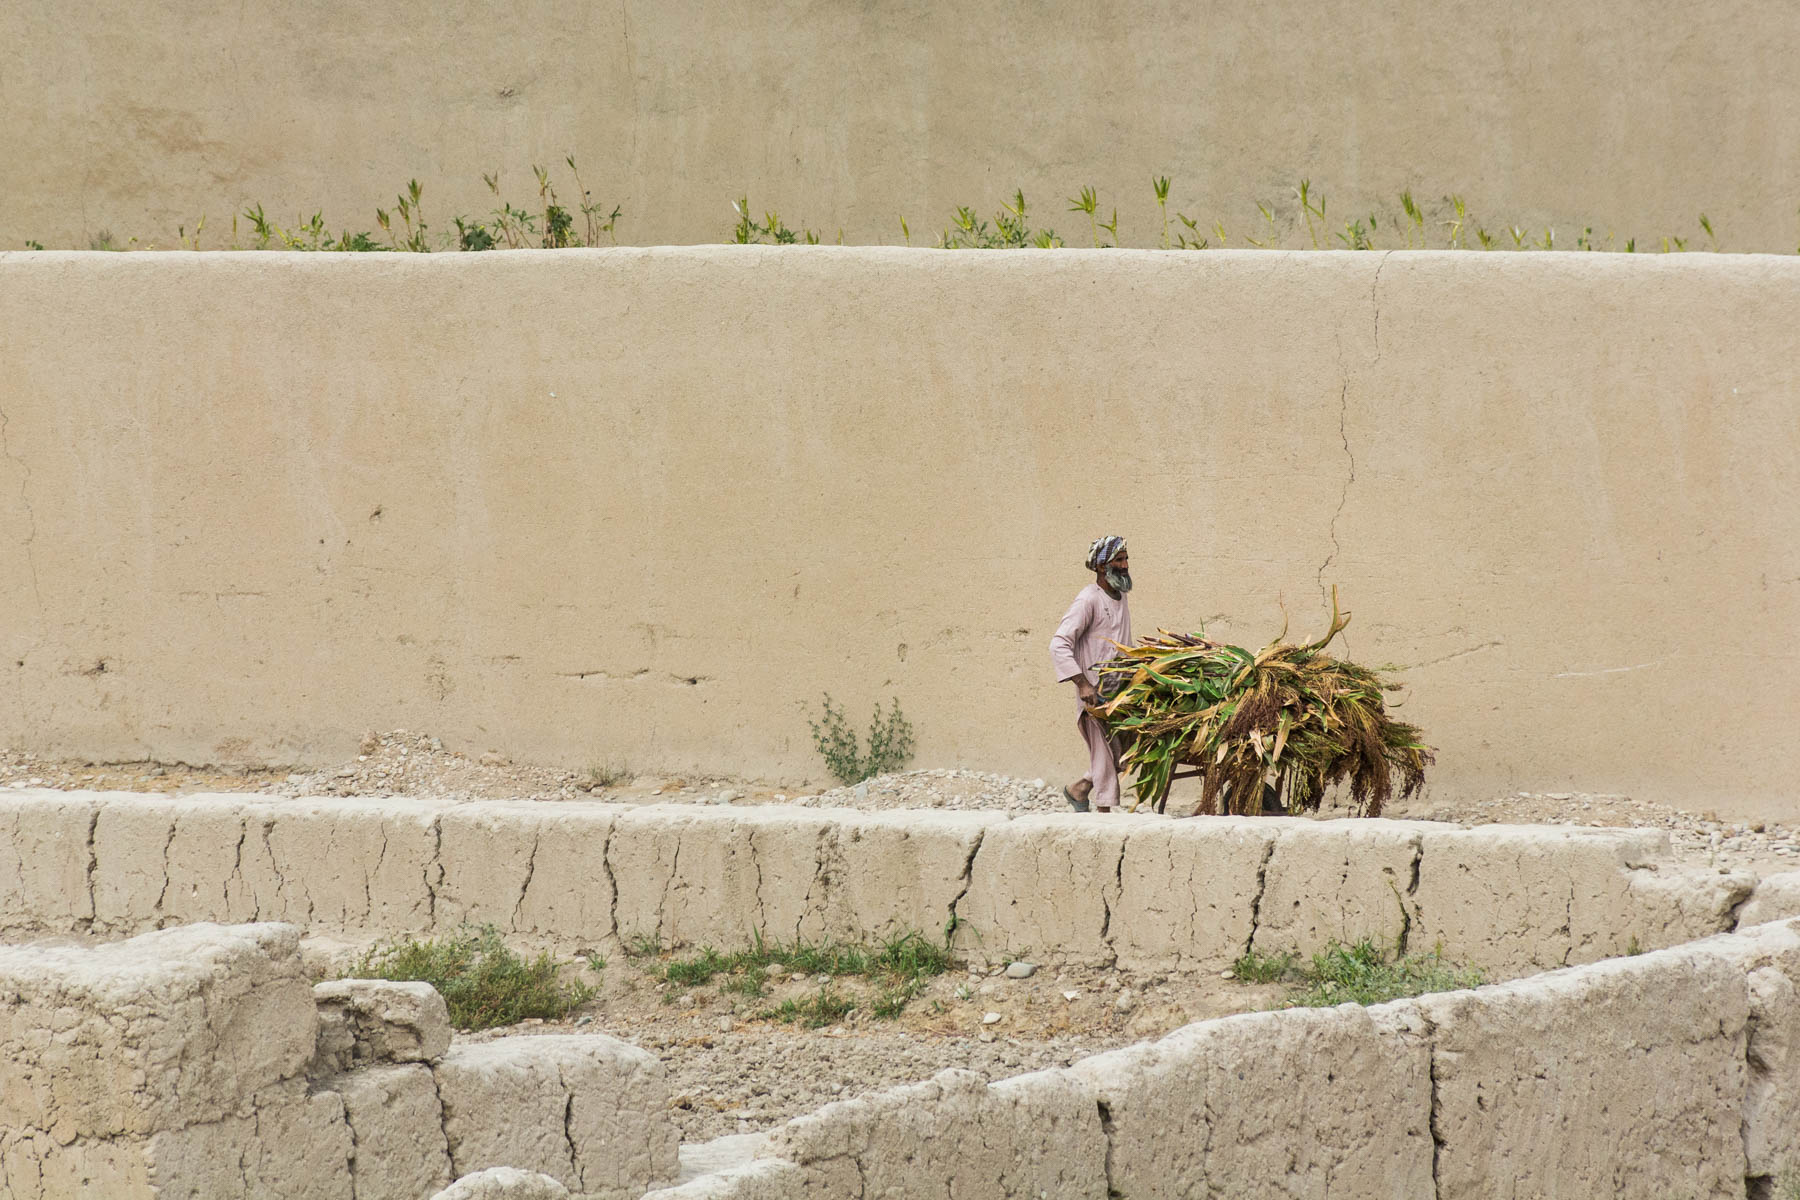 Photos of Balkh, Afghanistan - A man pushing a cart of dried leaves in Balkh - Lost With Purpose